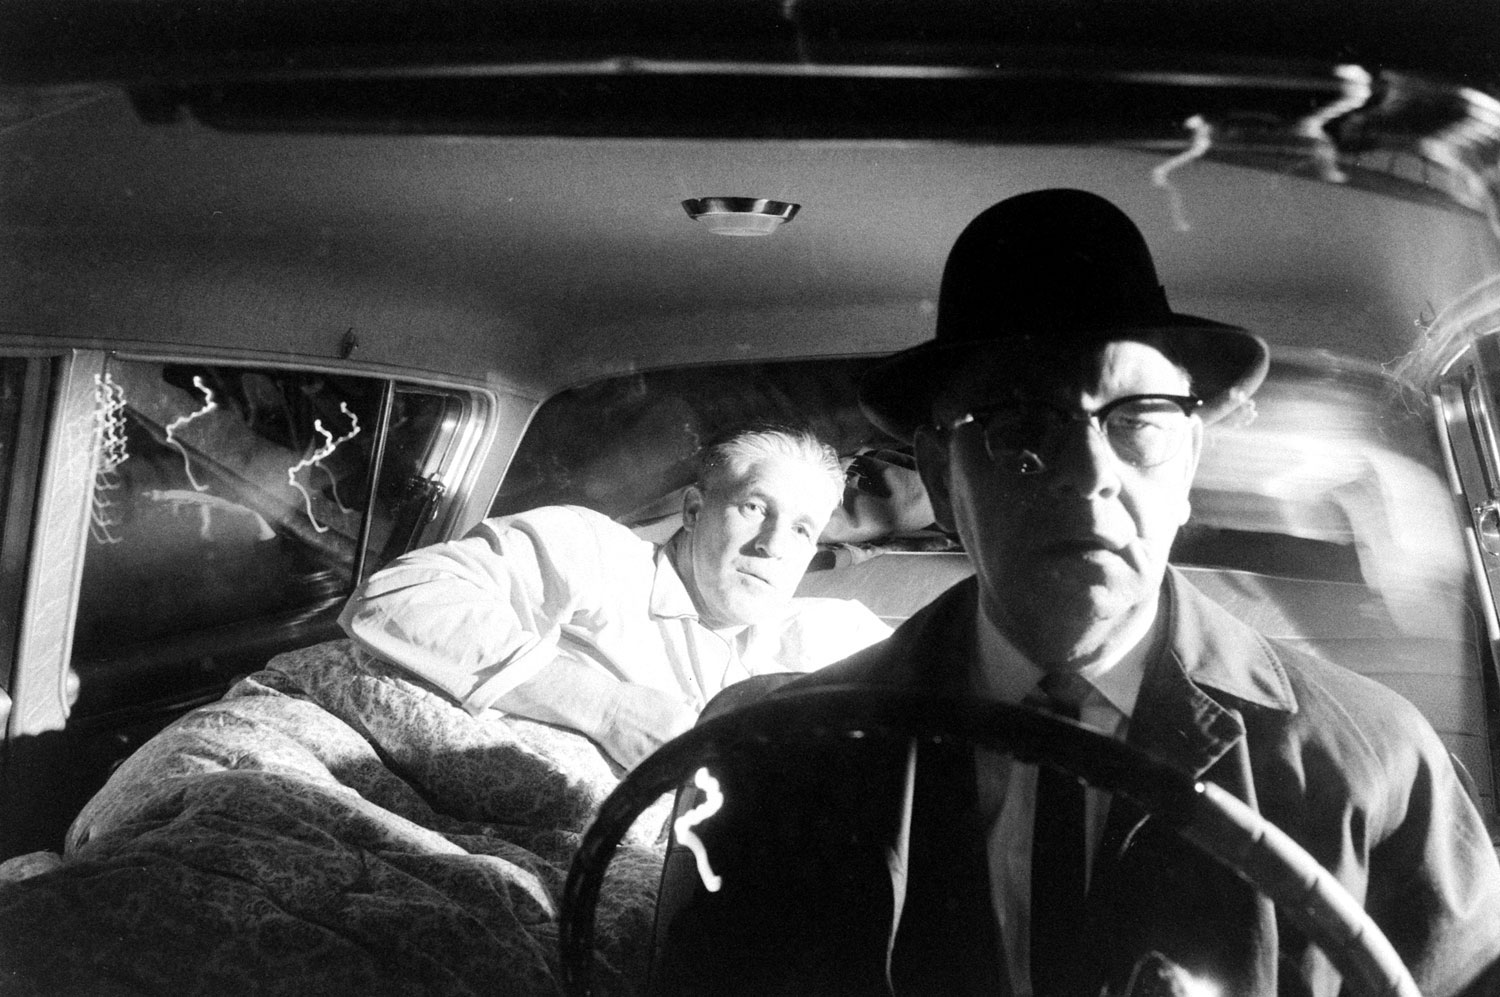 <b>Caption from LIFE.</b> At end of a long day on the new state constitution -- and after a quick change to pajamas -- Romney falls asleep on fold-back seat of his car as the chauffeur begins the trip back to Bloomfield Hills.